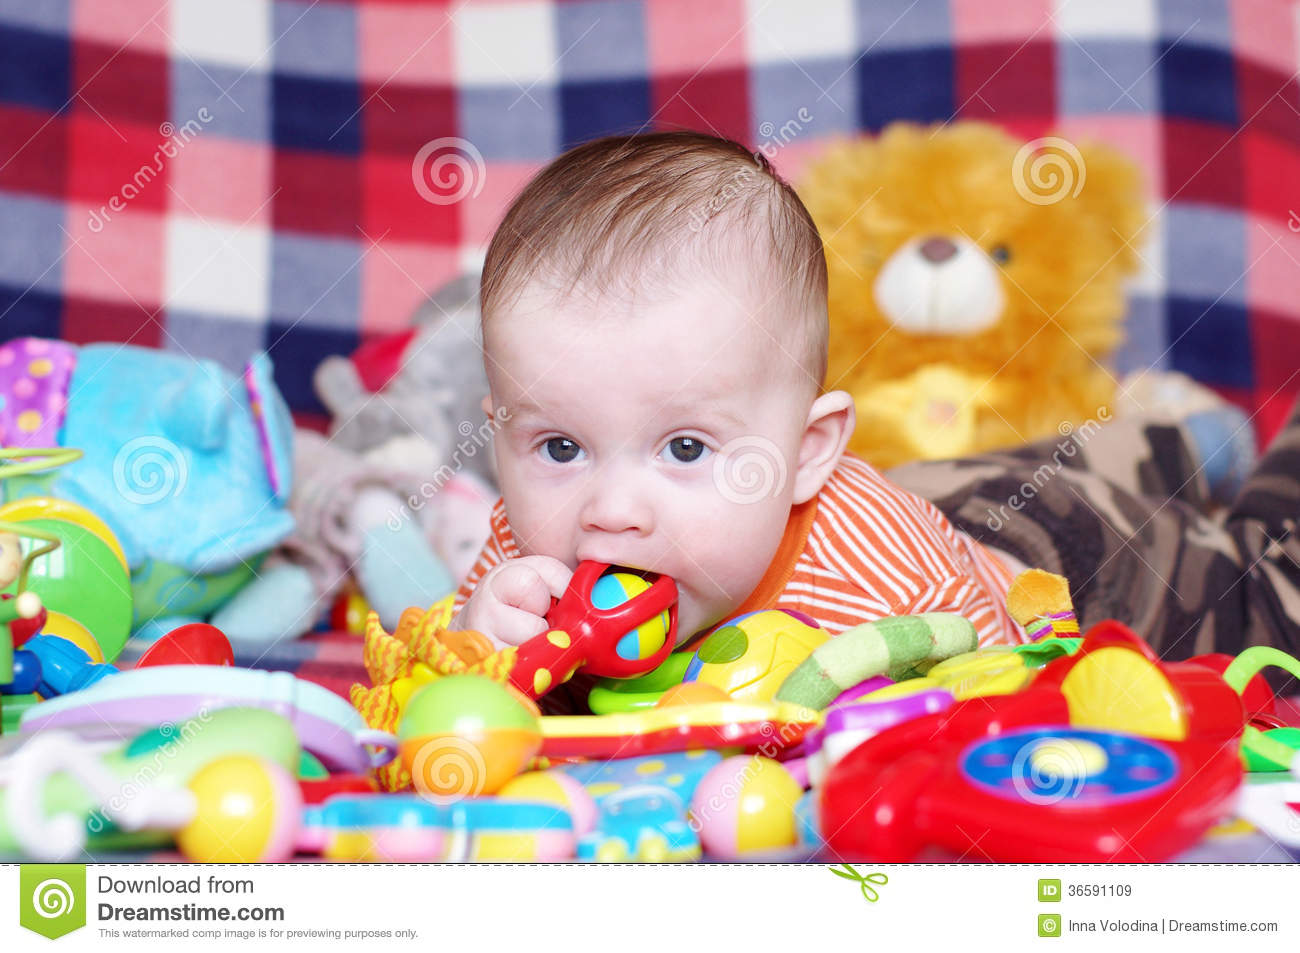 Juguetes Para 6 Meses 5 Months Baby With Toys Royalty Free Stock Images Image